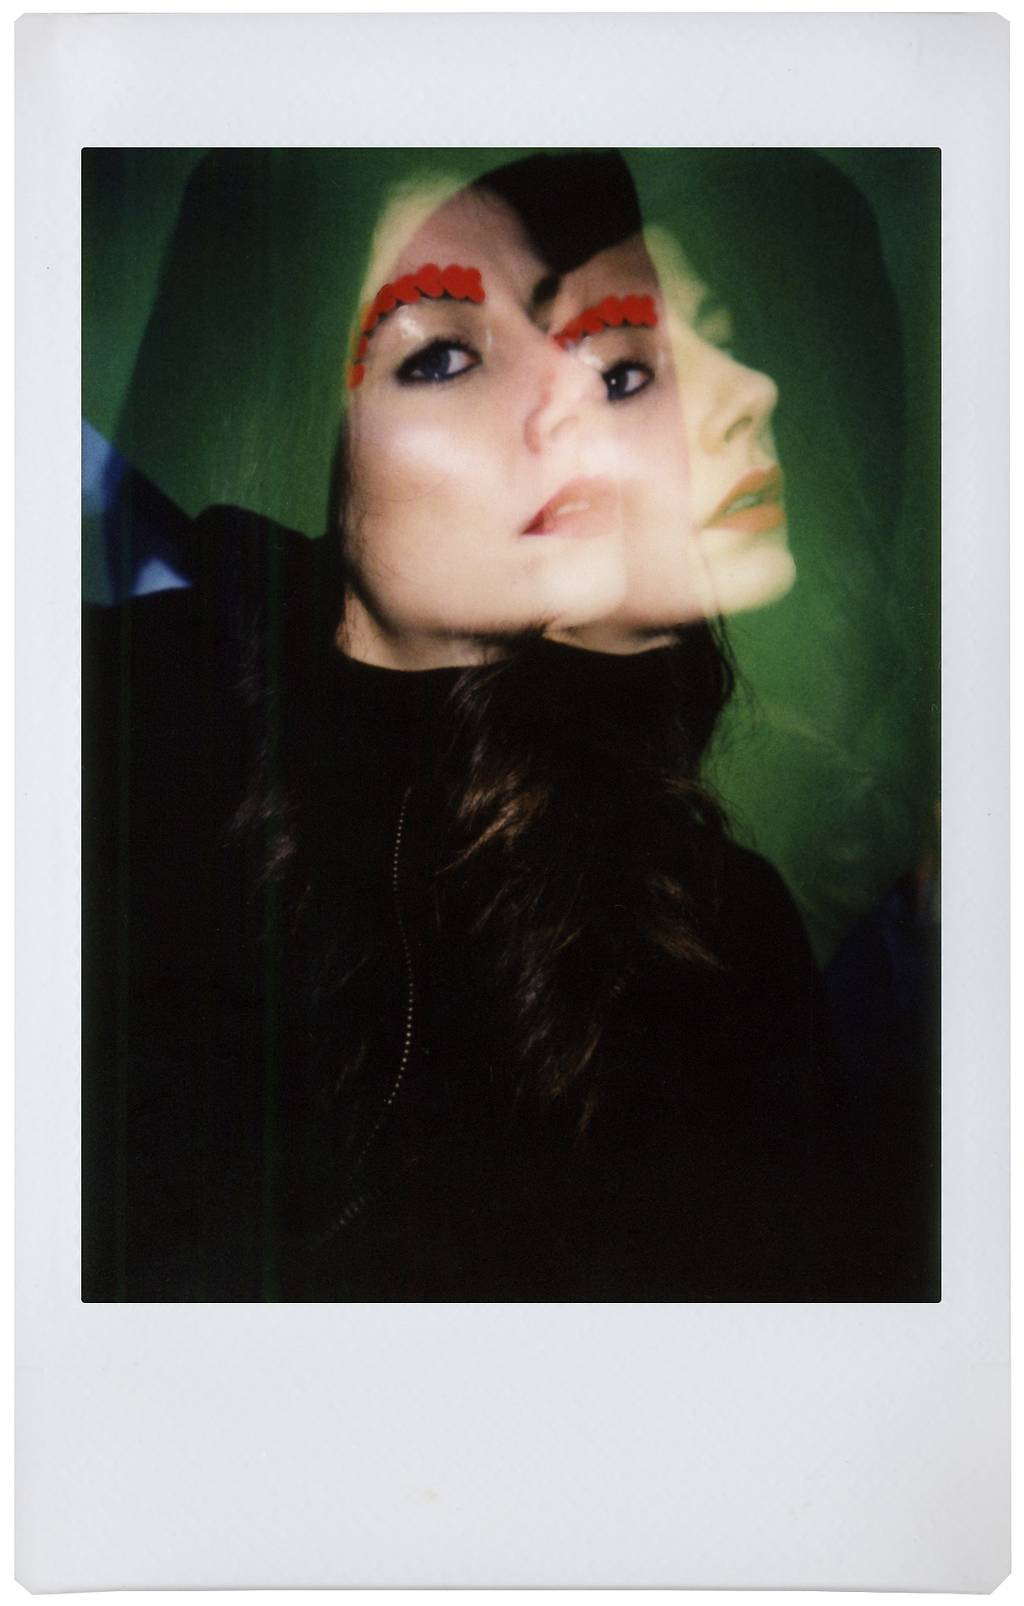 Lomo'Instant Automat Glass Tip: Be Kind